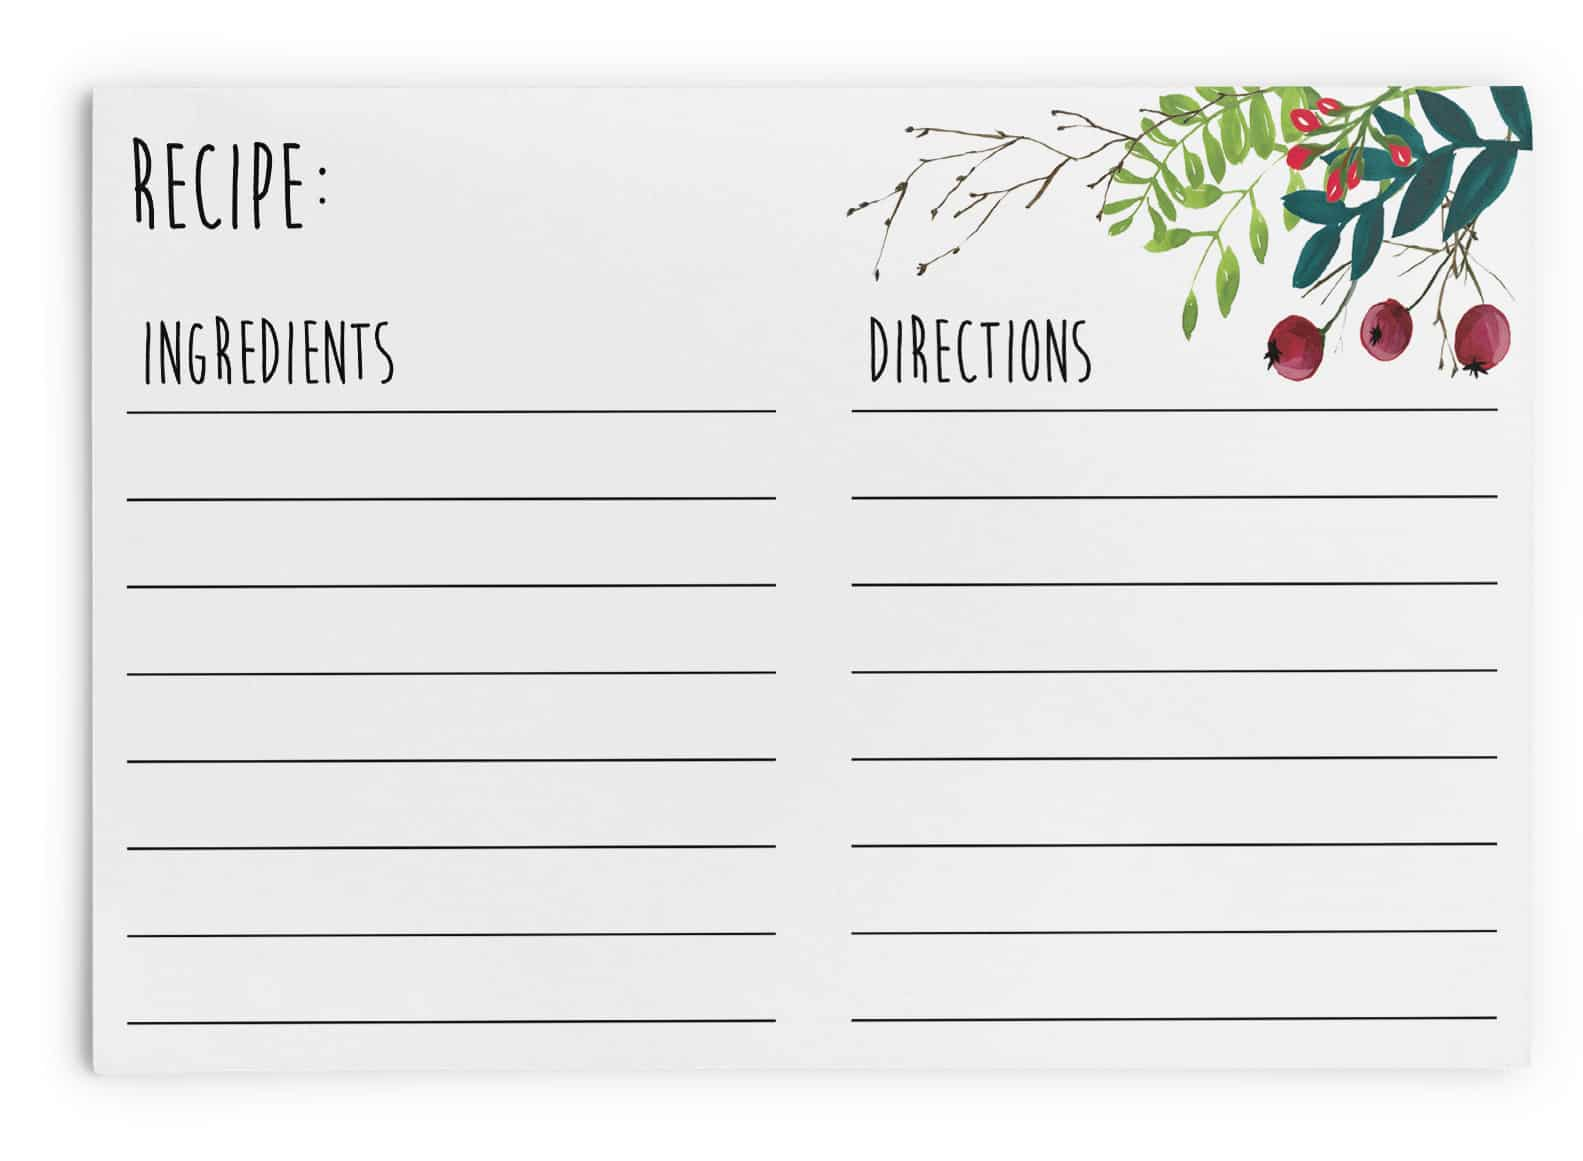 graphic about Printable Christmas Recipe Cards identify Totally free Printable Xmas Recipe Playing cards Eyestigmatic Style and design